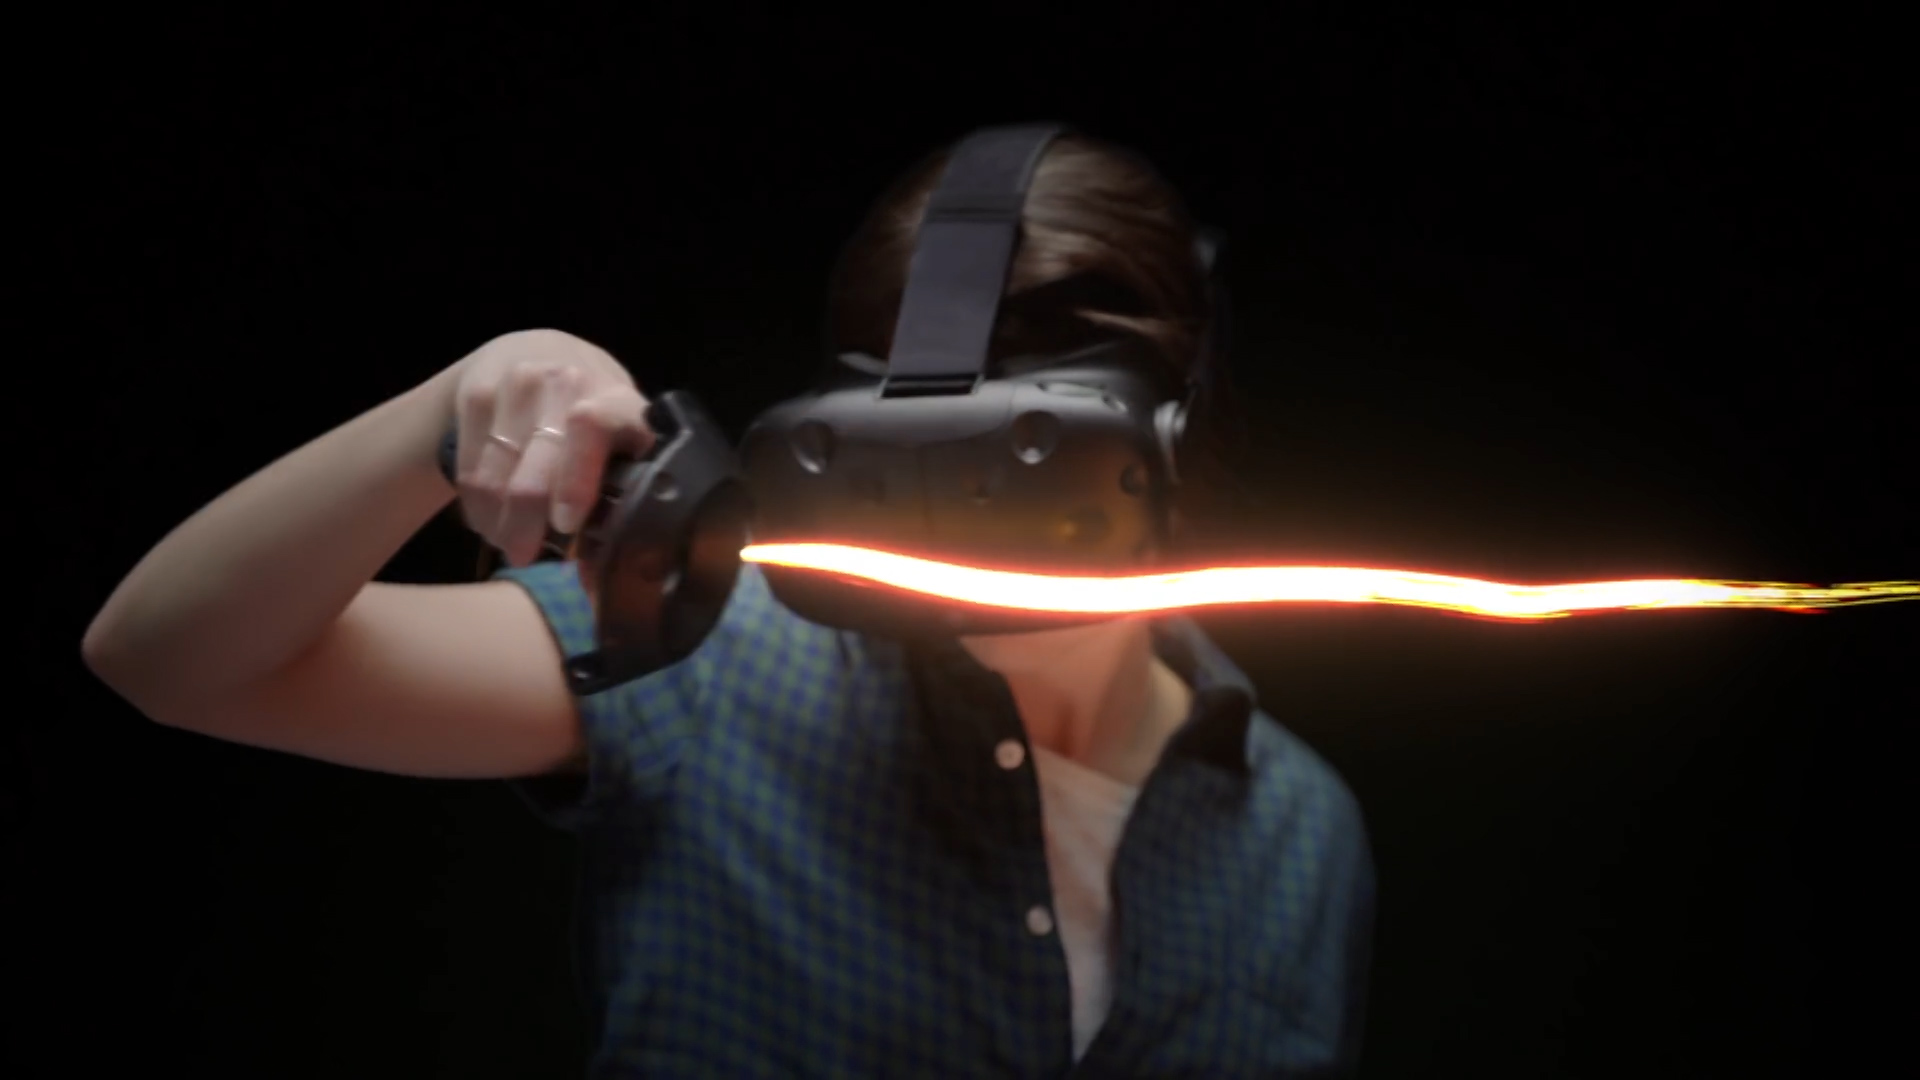 Meet the Google Tilt Brush, an app paired with the HTC Vive virtual reality device that allows you to paint in 3D with textured fabrics.